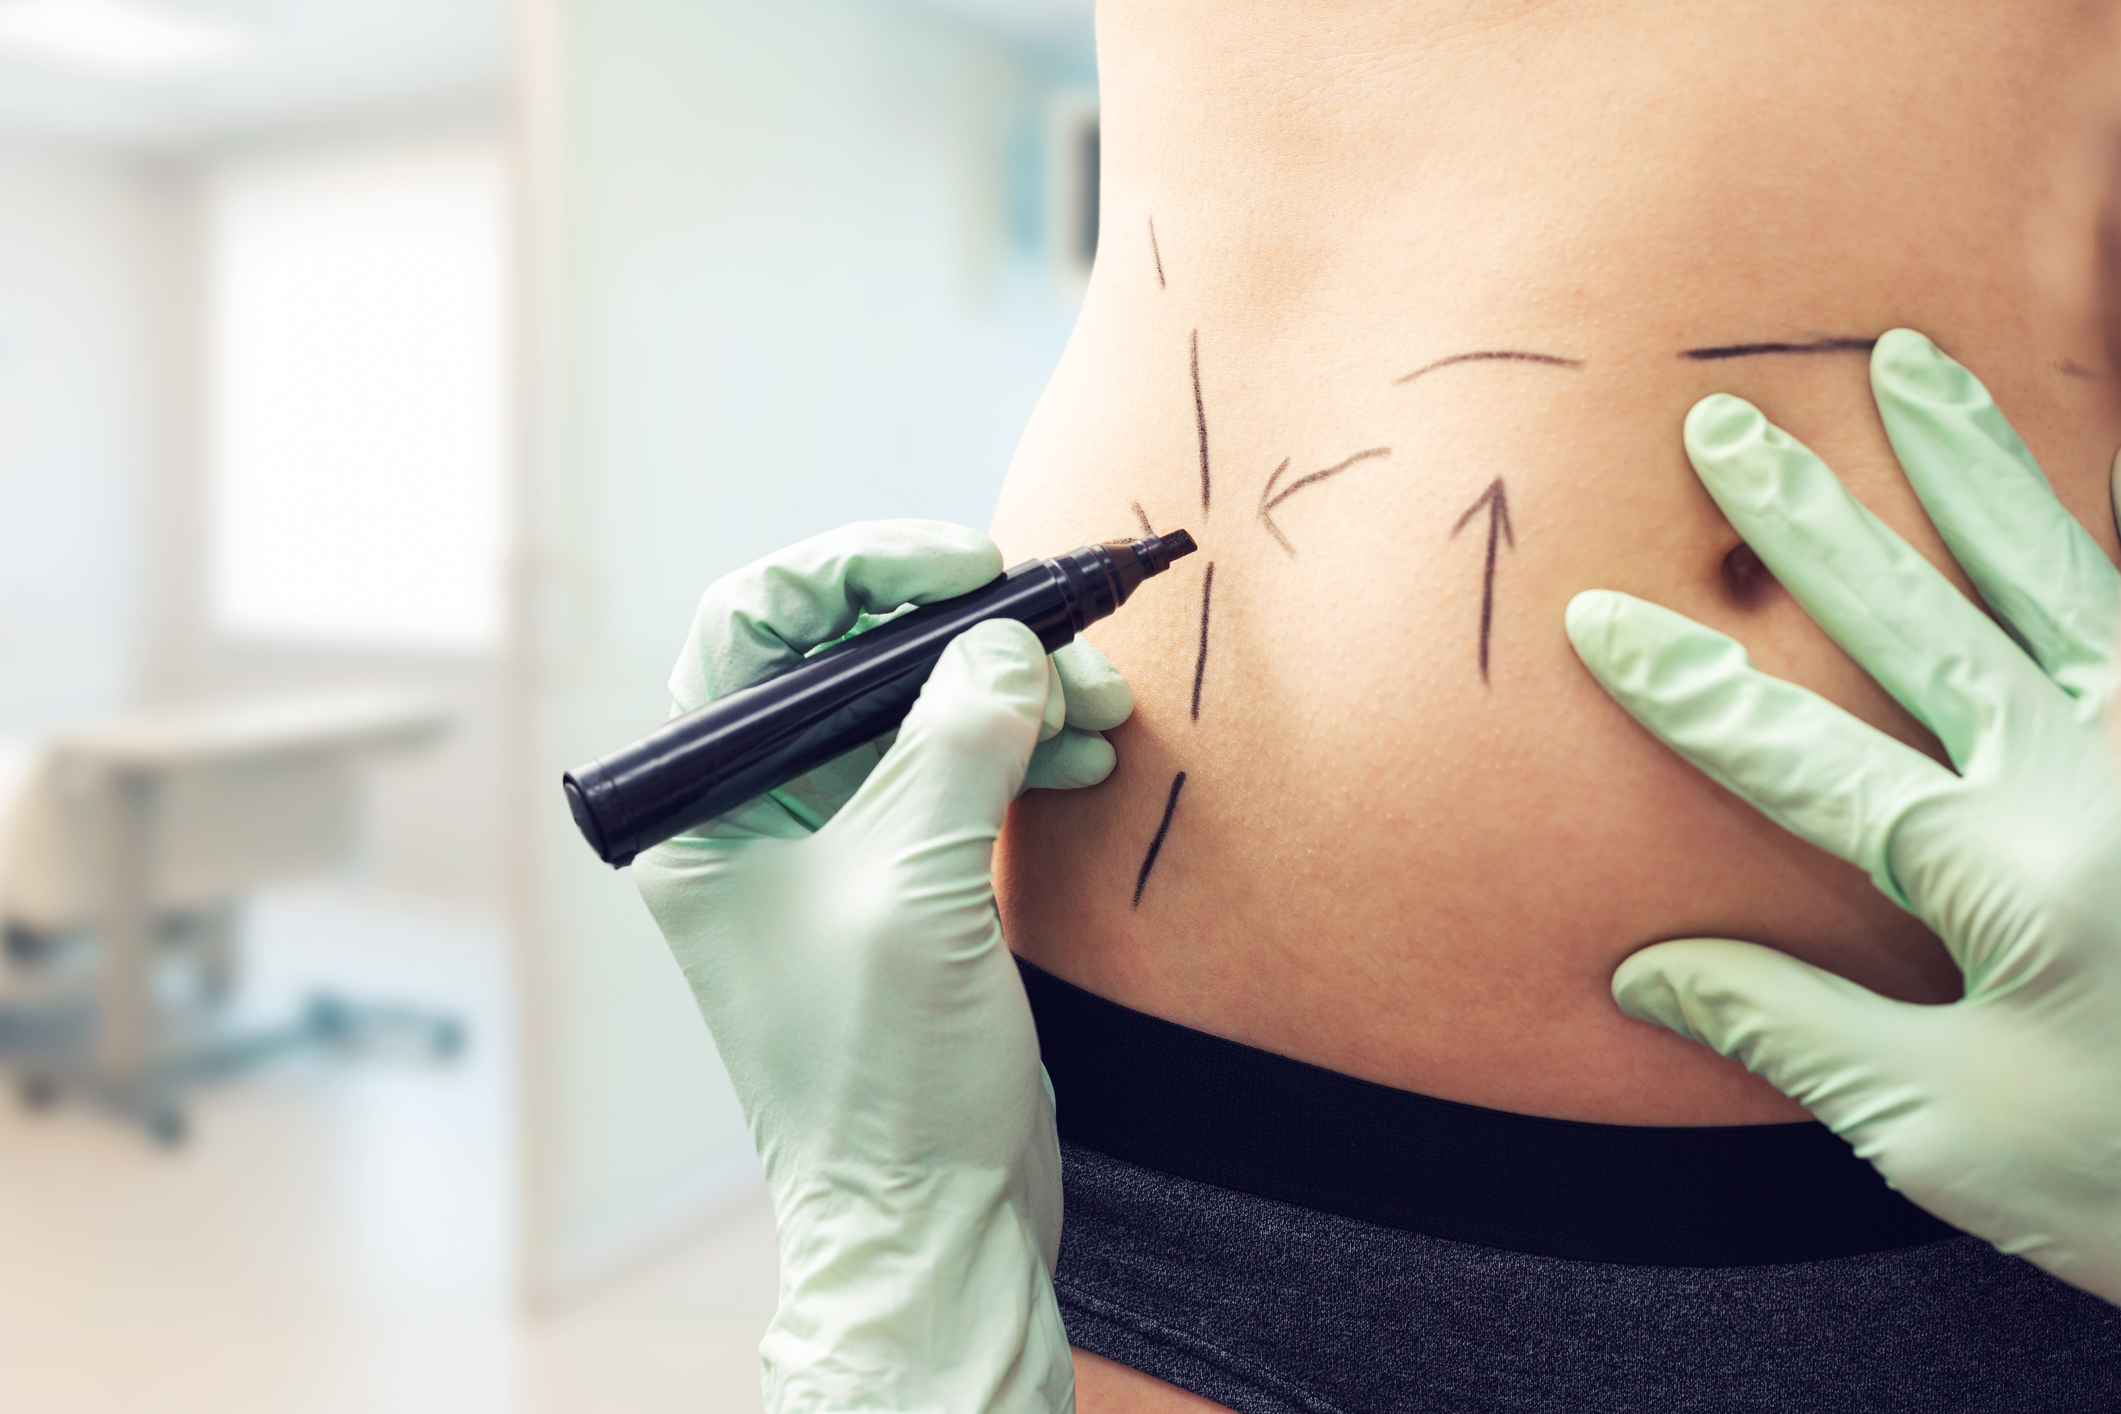 A patient is marked up for liposuction